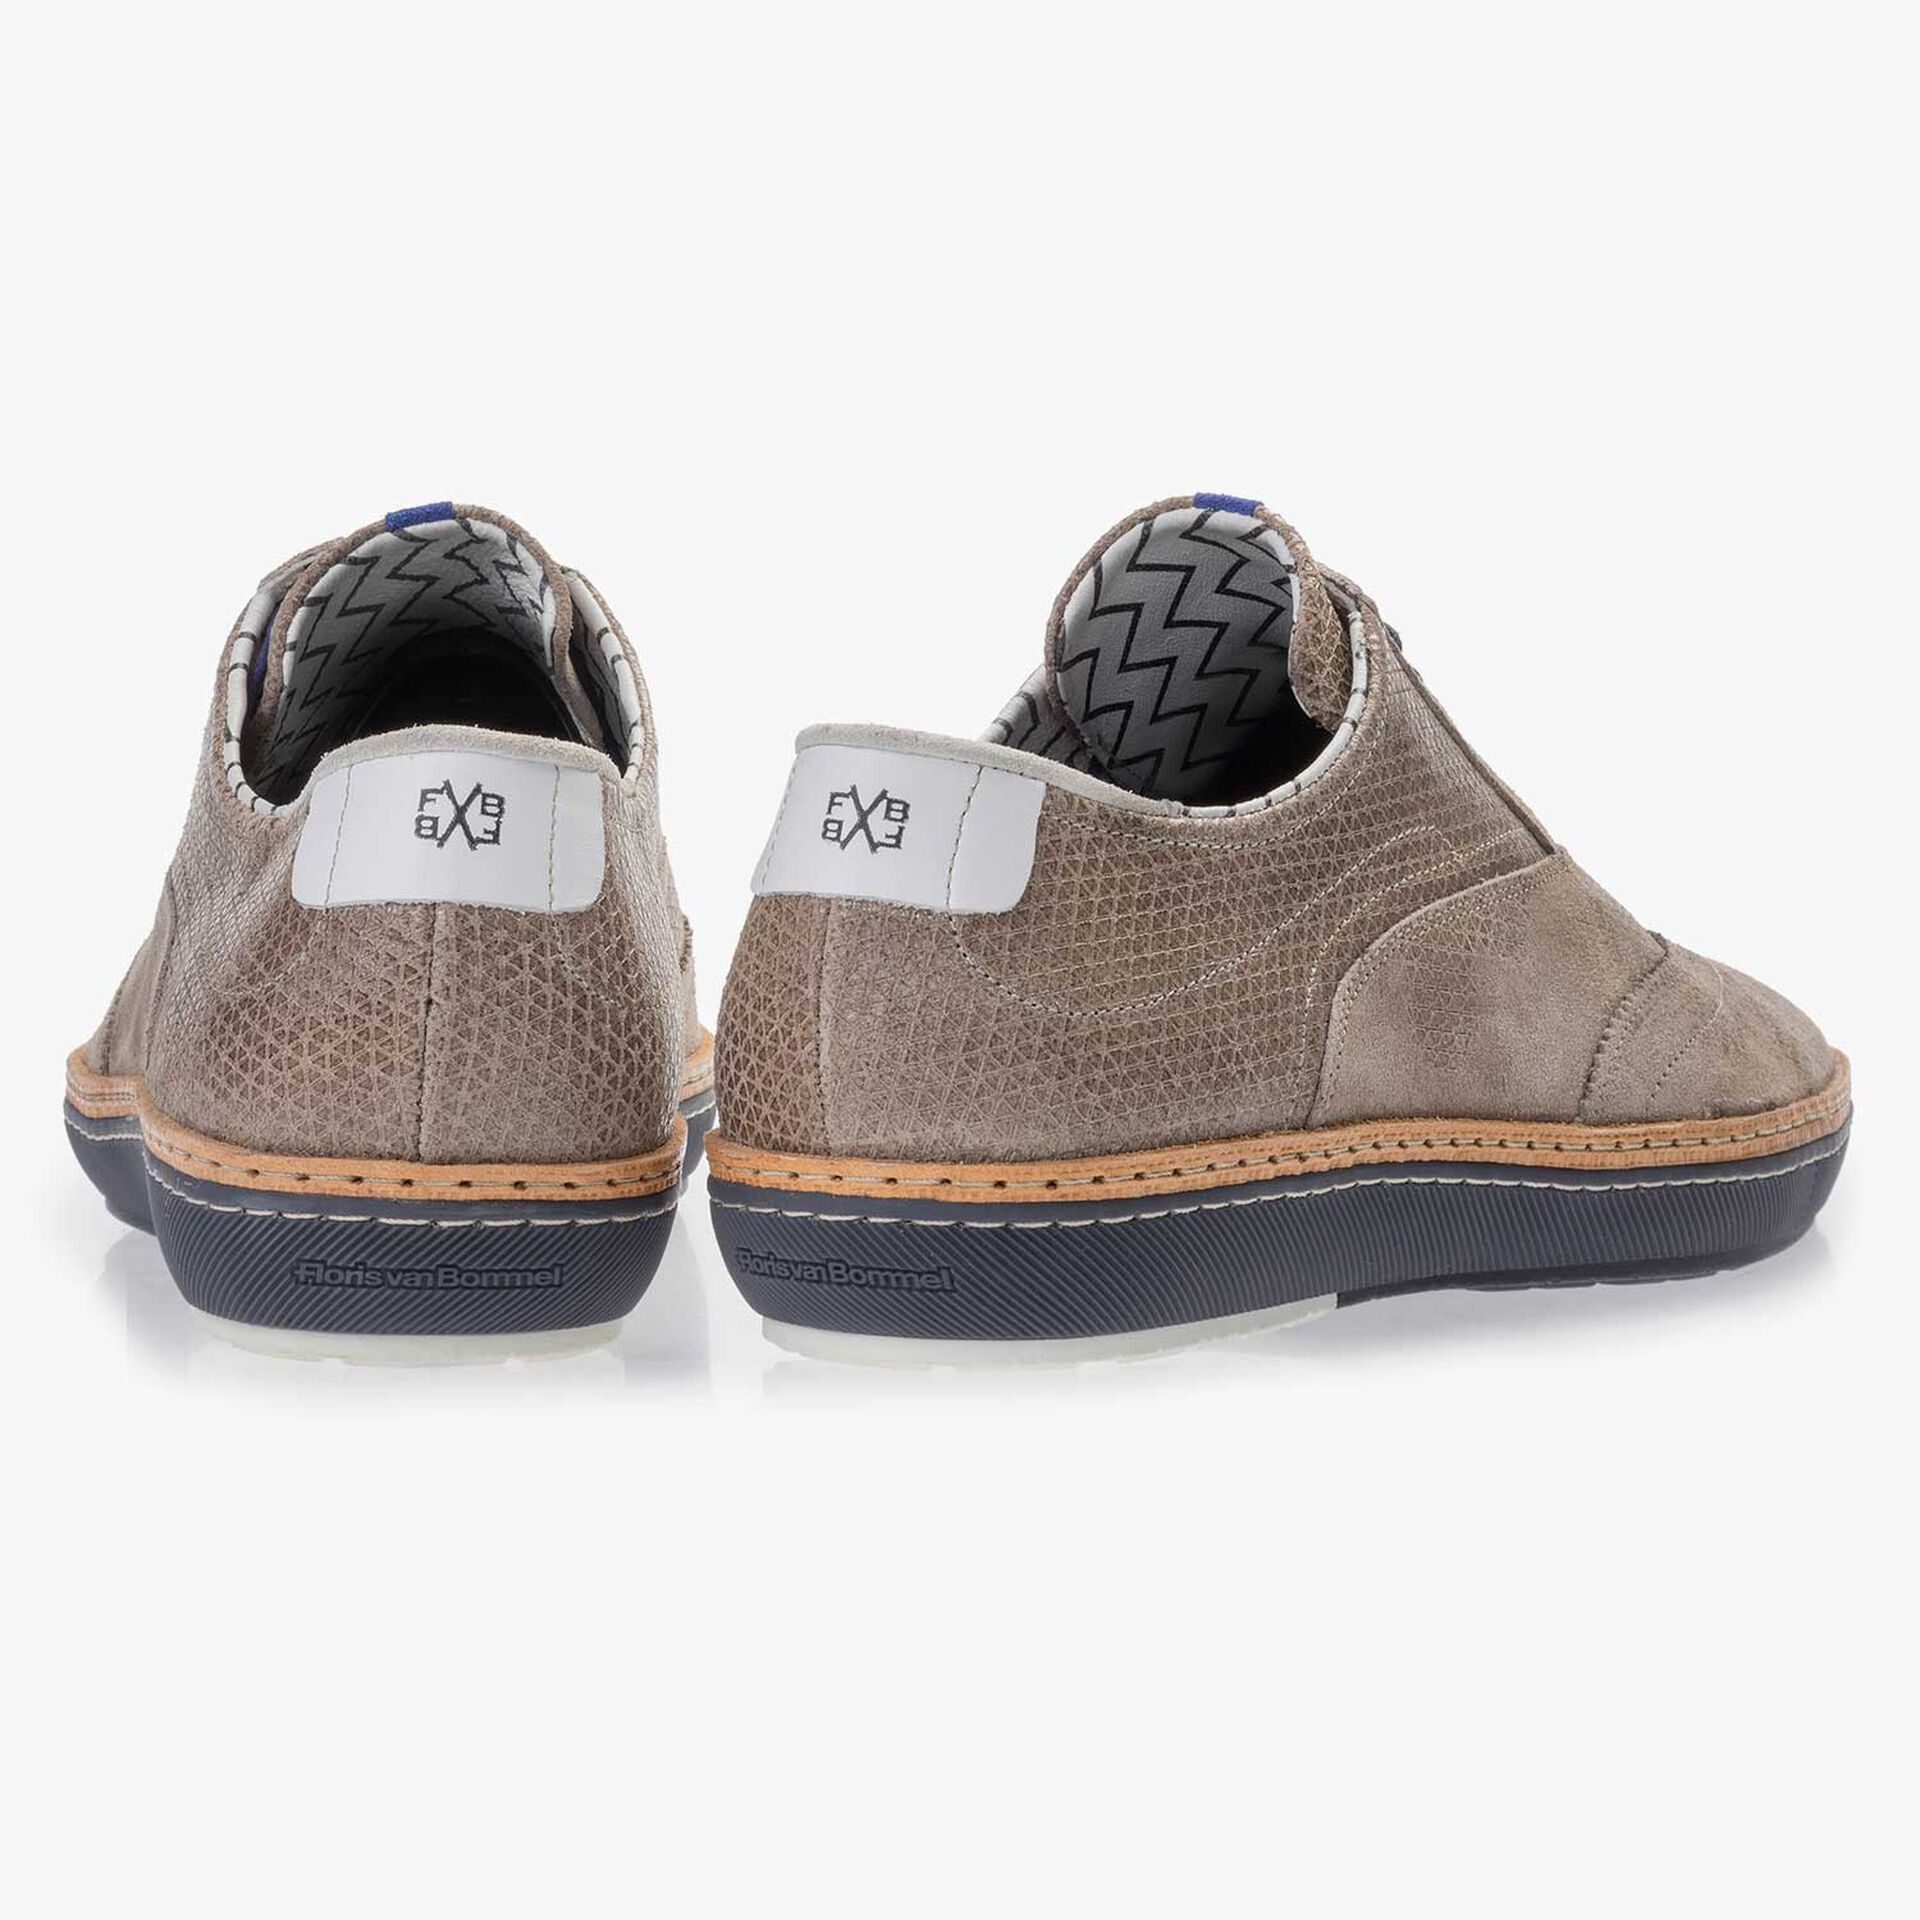 Taupe-coloured patterned suede leather sneaker